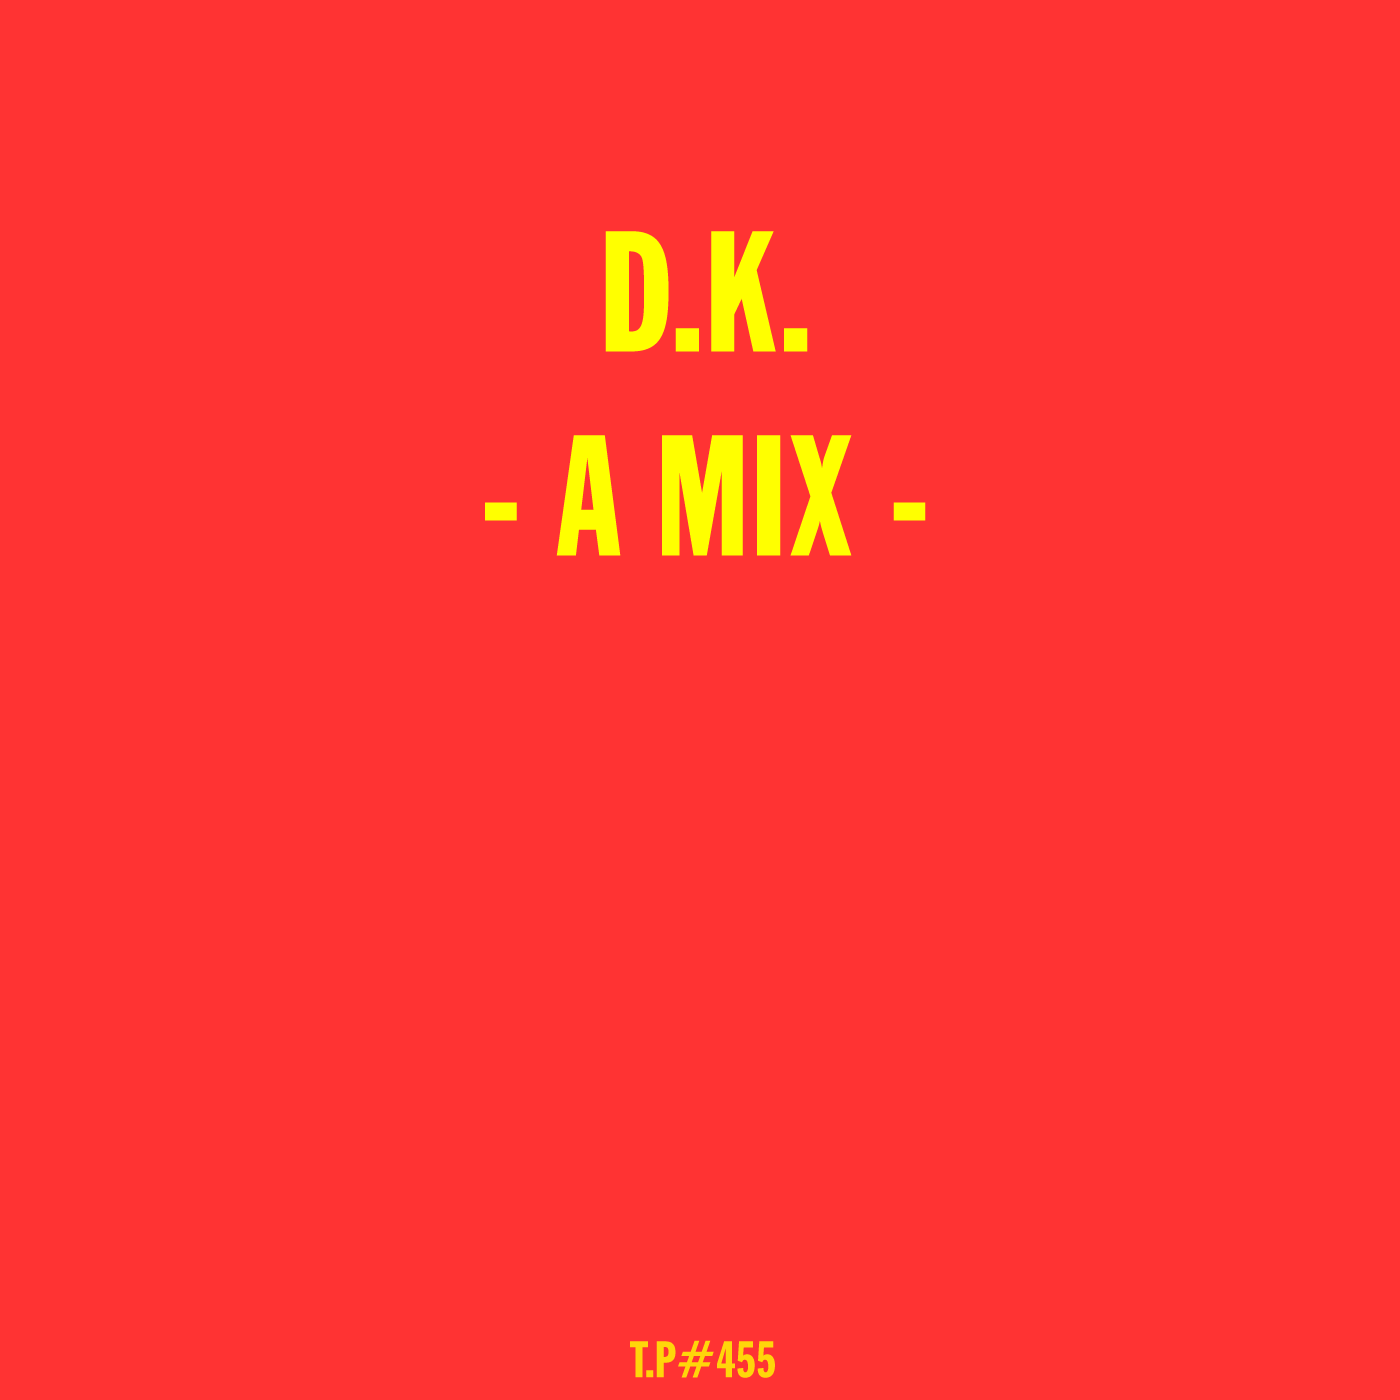 D.K., Mix, Test Pressing, Antinote, Melody As Truth